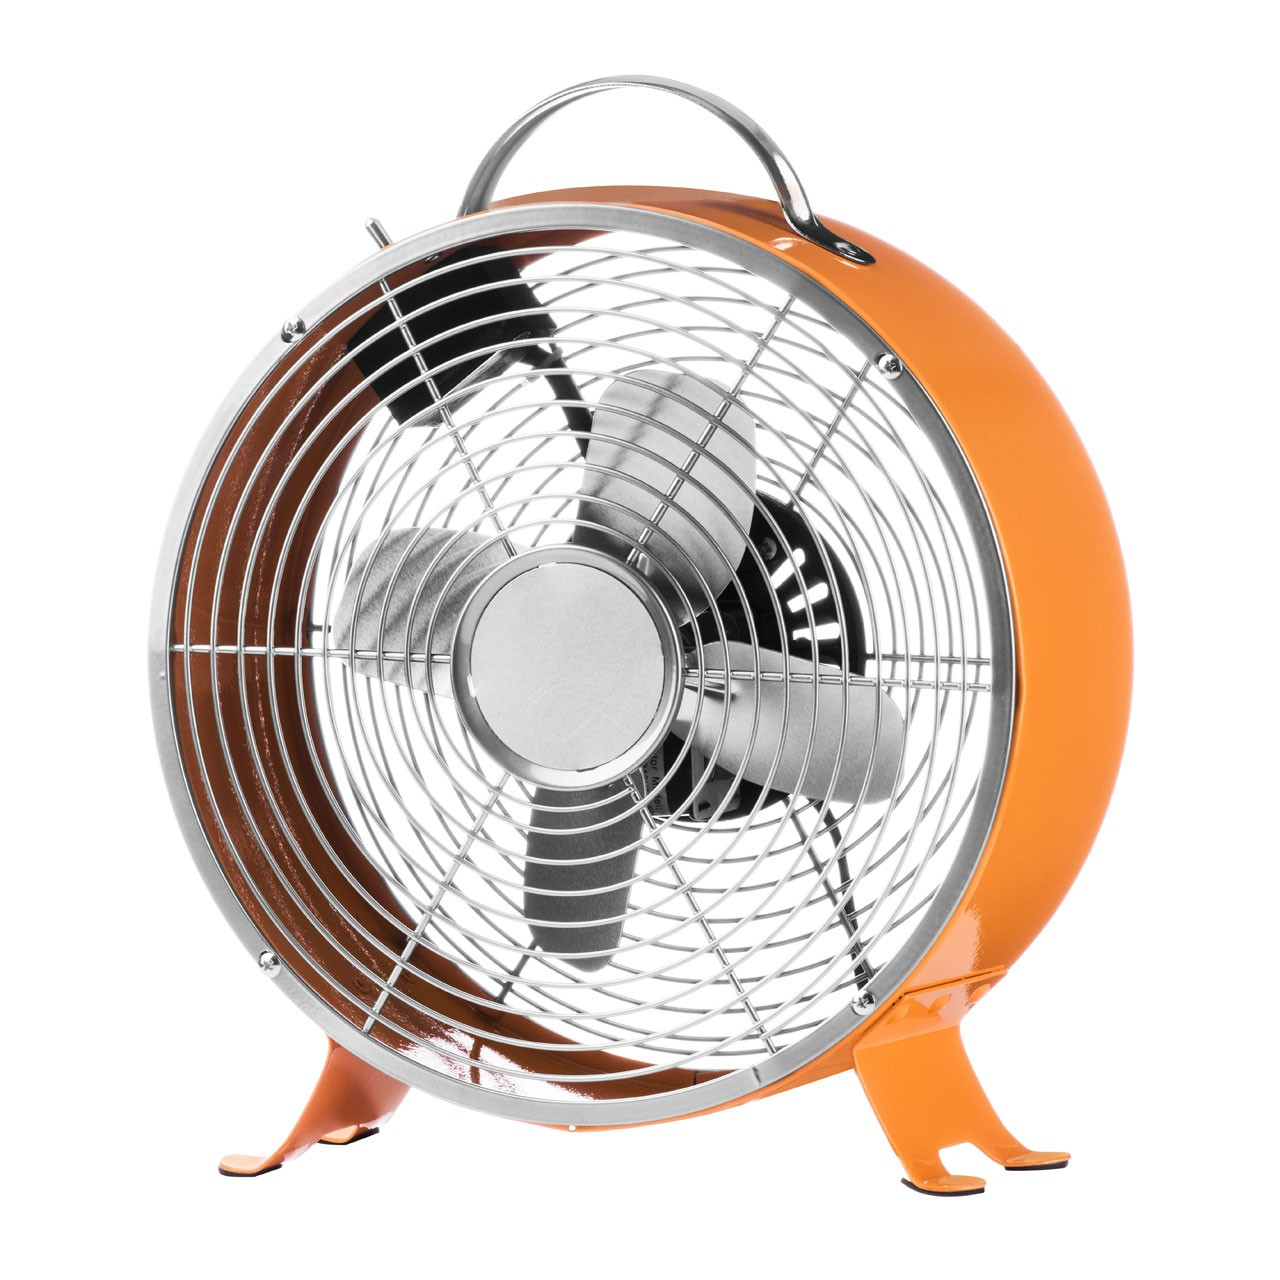 Retro Desk Fan with 2-Speeds, Orange